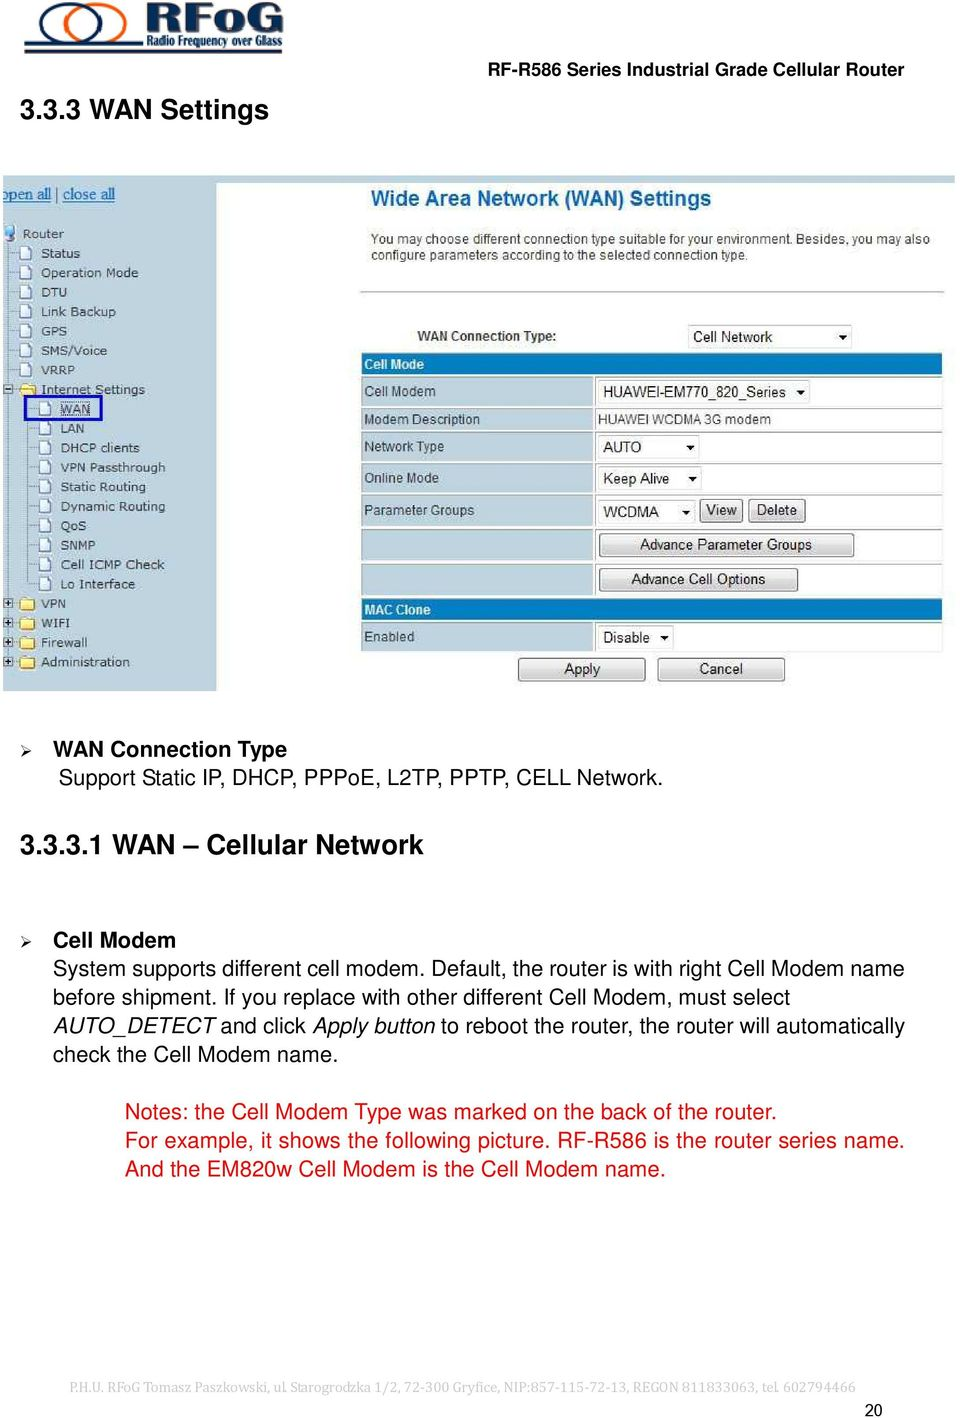 If you replace with other different Cell Modem, must select AUTO_DETECT and click Apply button to reboot the router, the router will automatically check the Cell